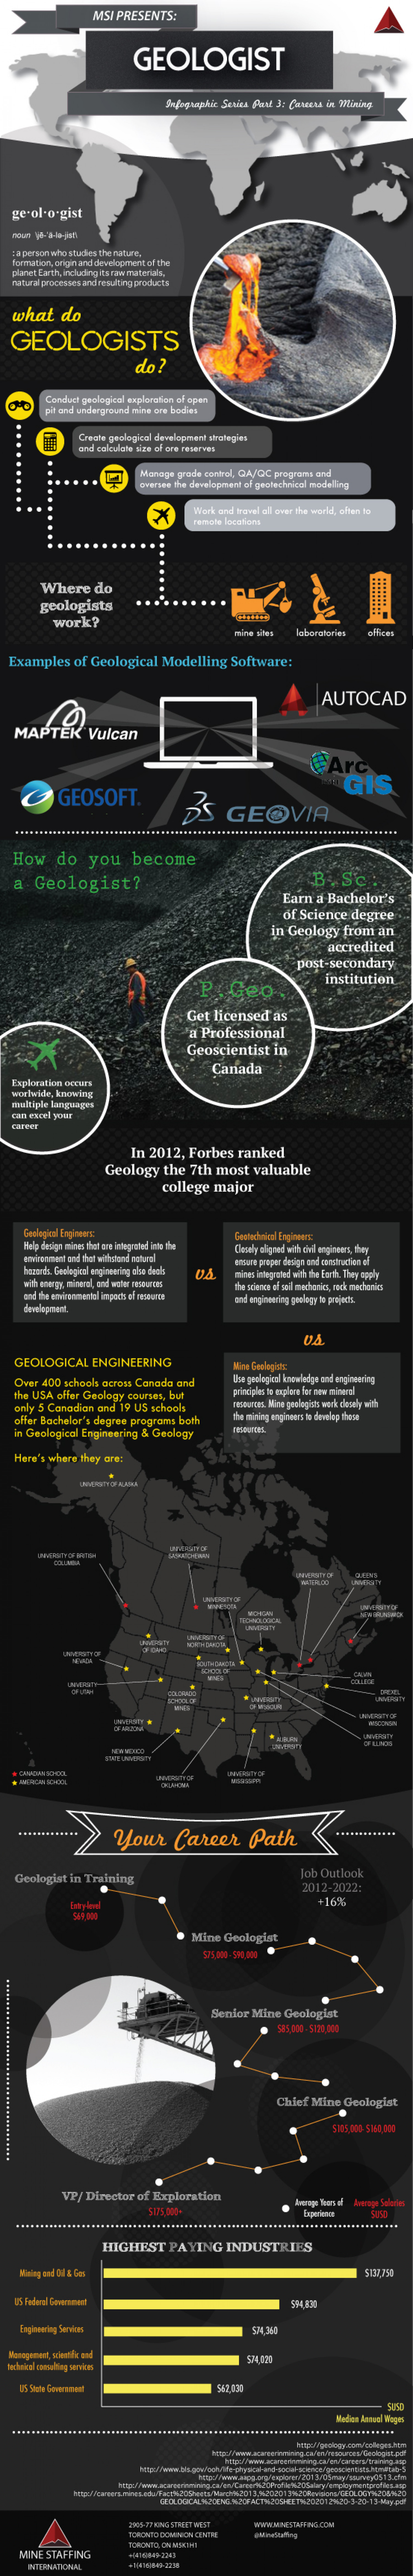 Careers in Mining: Geologist  Infographic